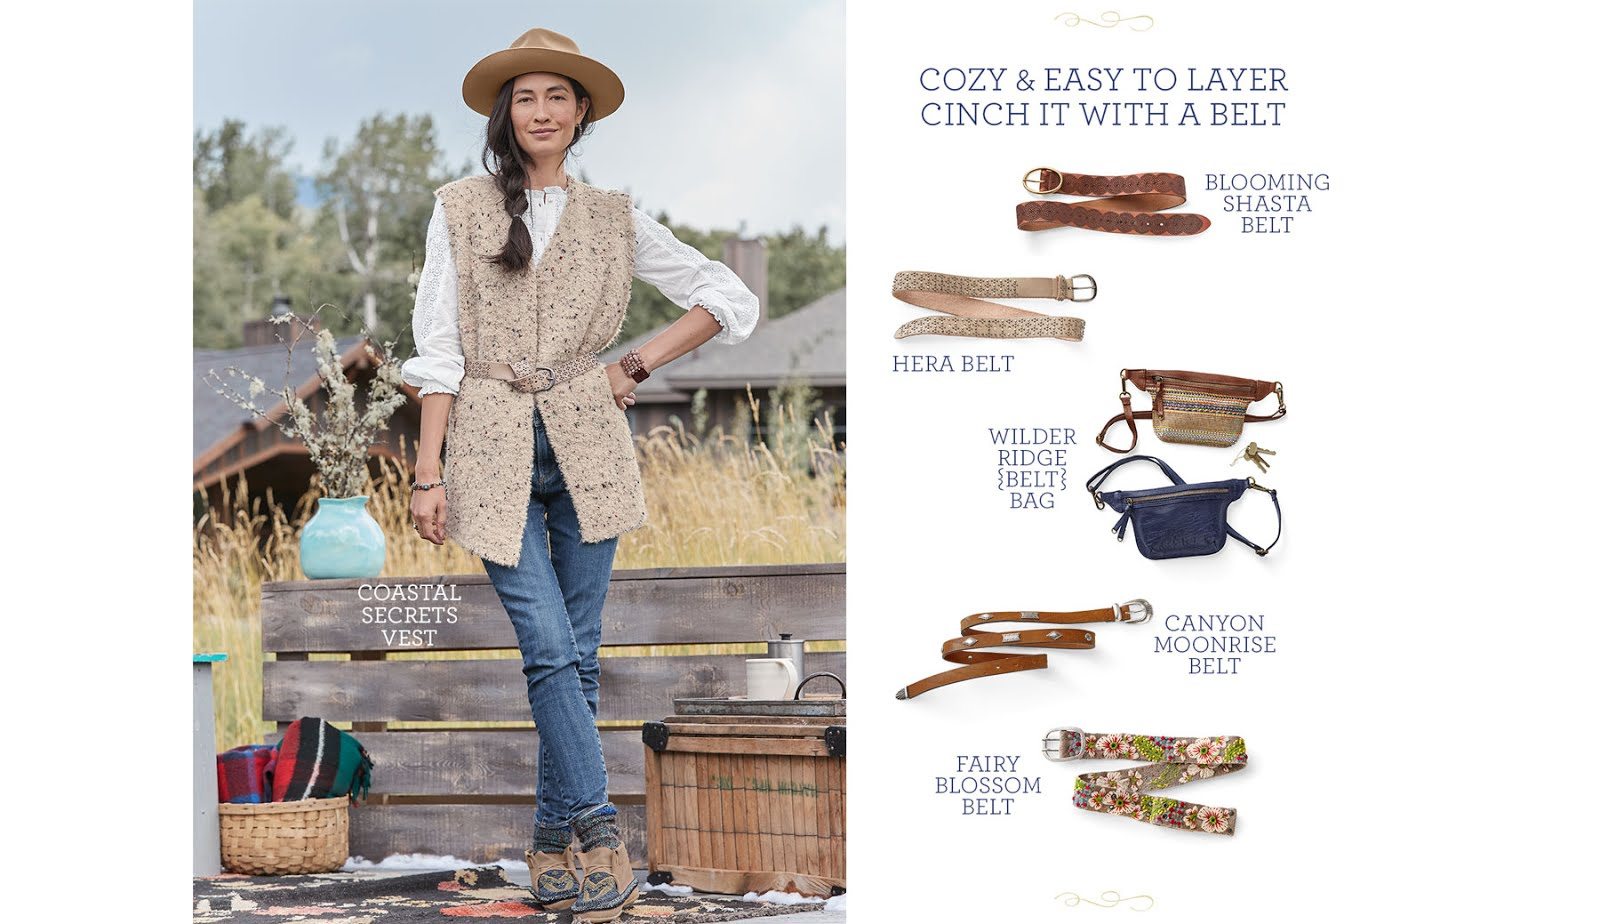 sundance catalog belts and vests